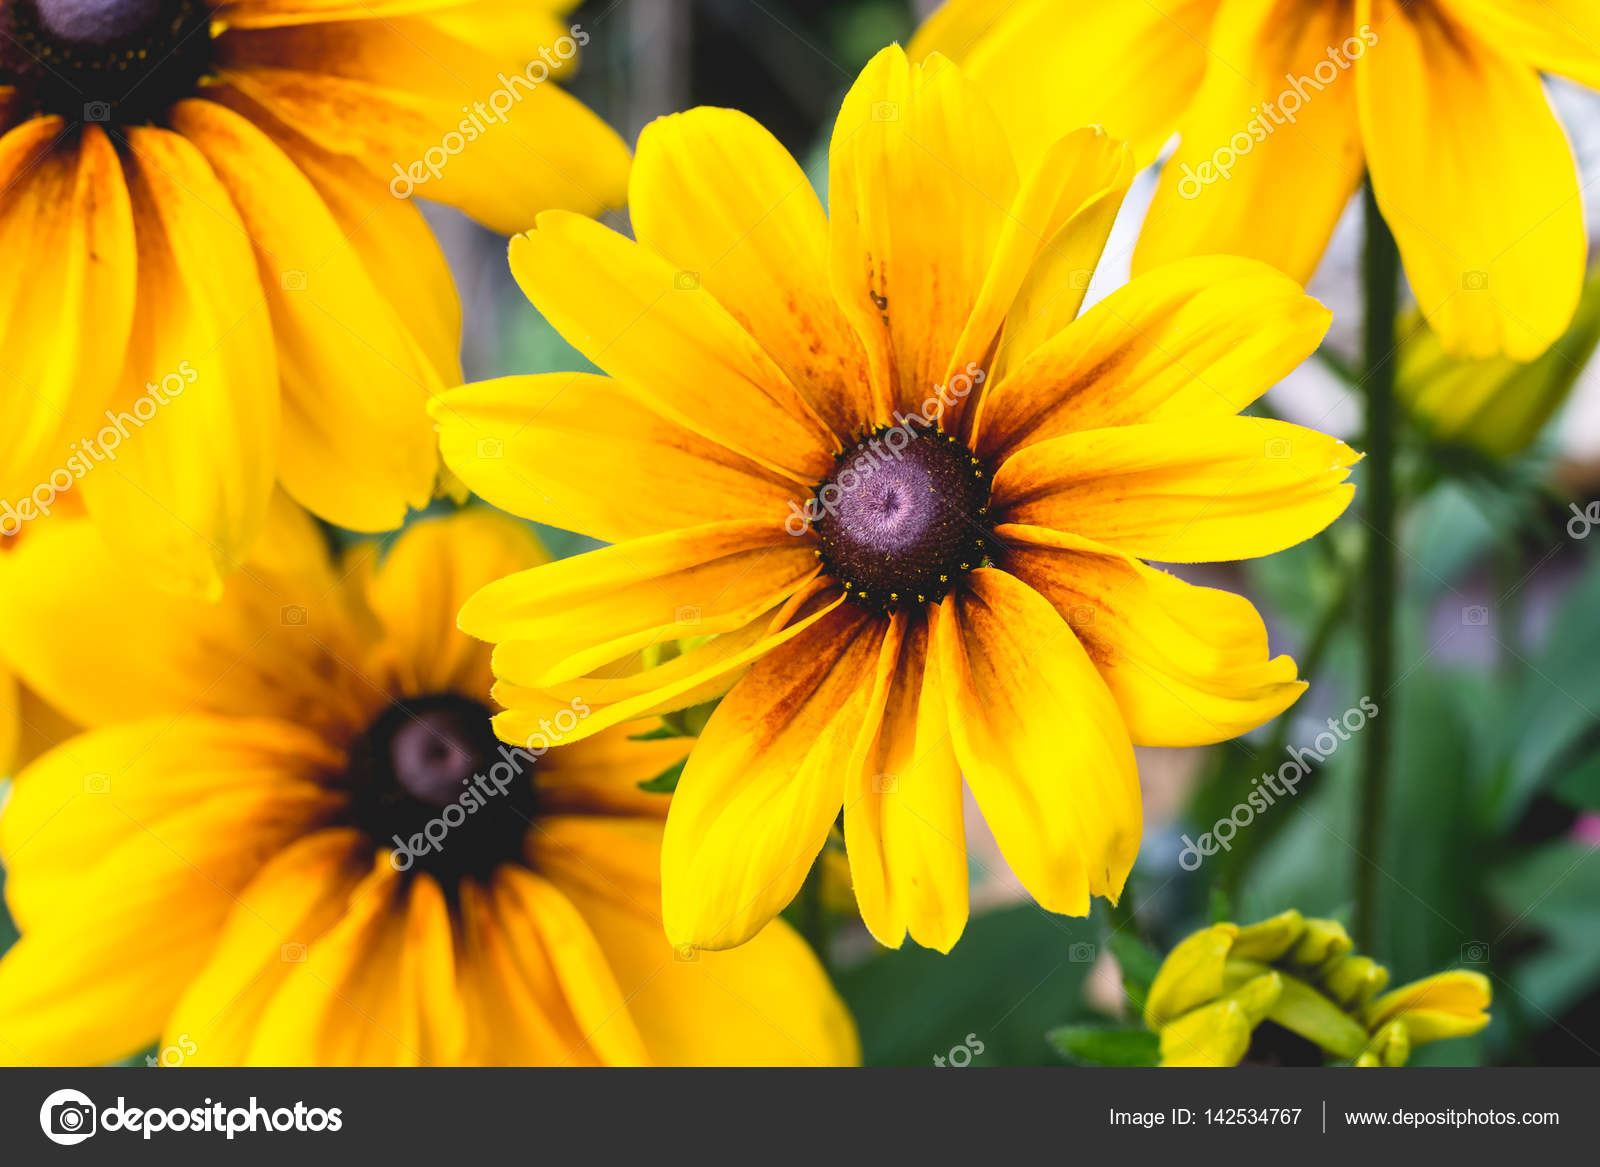 Close up yellow flowers stock photo funkenschlag 142534767 close up cropped image of black eyed susan flowers with yellow leaves and dark center full frame image photo by funkenschlag mightylinksfo